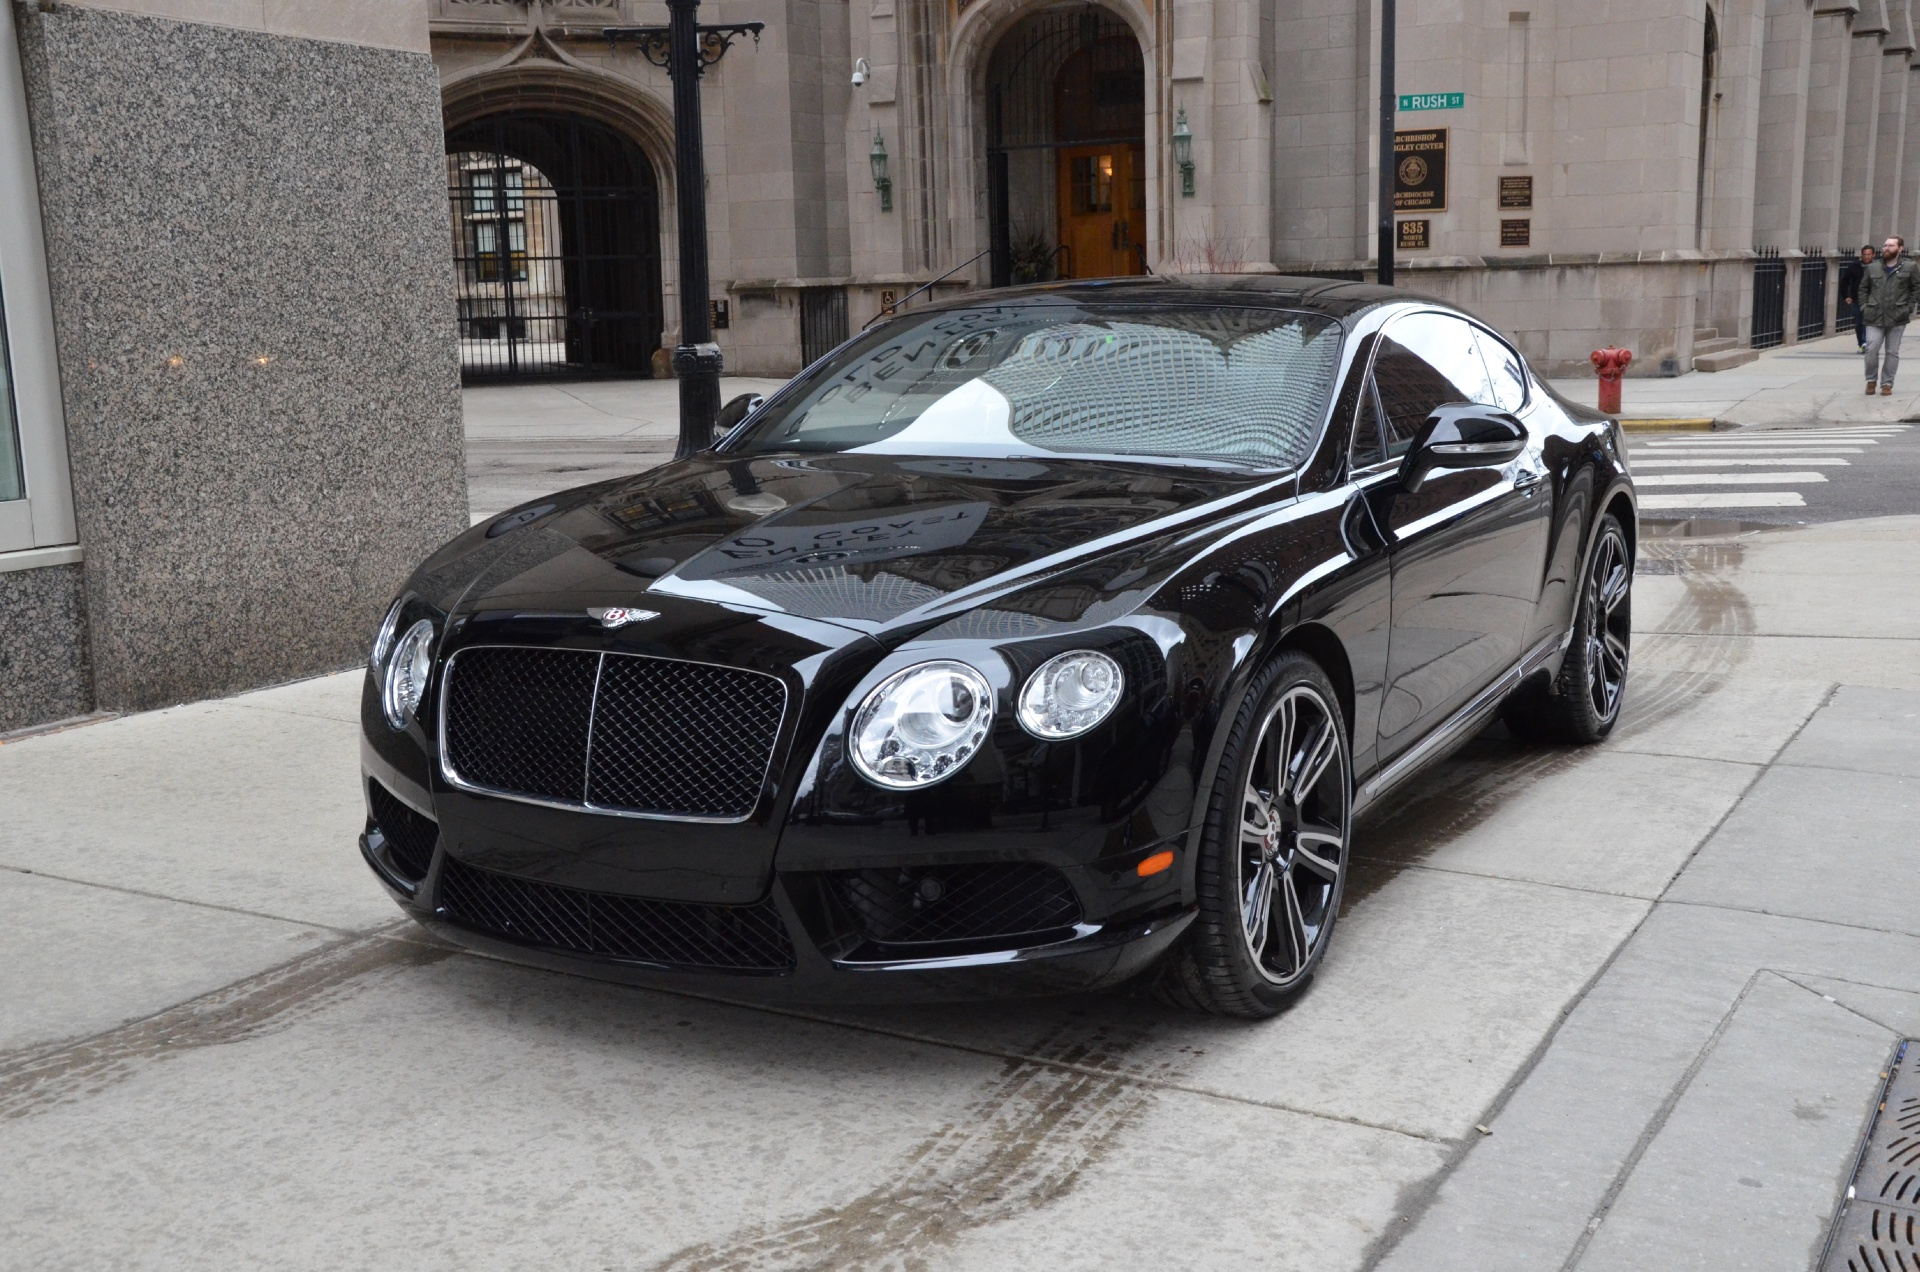 2014 bentley continental gt v8 stock b577 s for sale near new 2014 bentley continental gt v8 chicago il vanachro Images